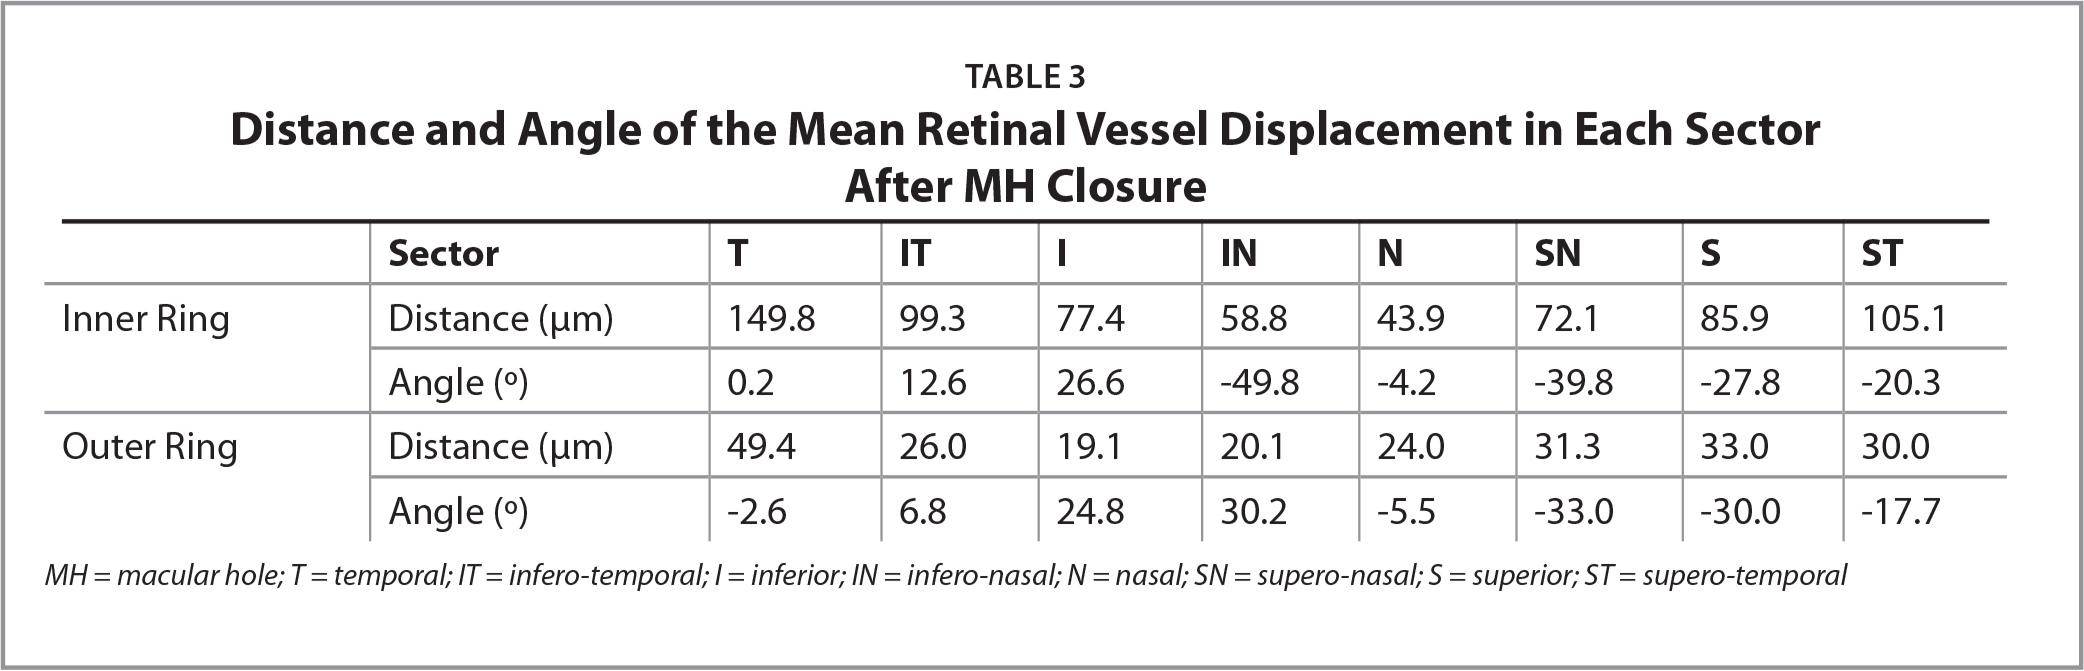 Distance and Angle of the Mean Retinal Vessel Displacement in Each SectorAfter MH Closure